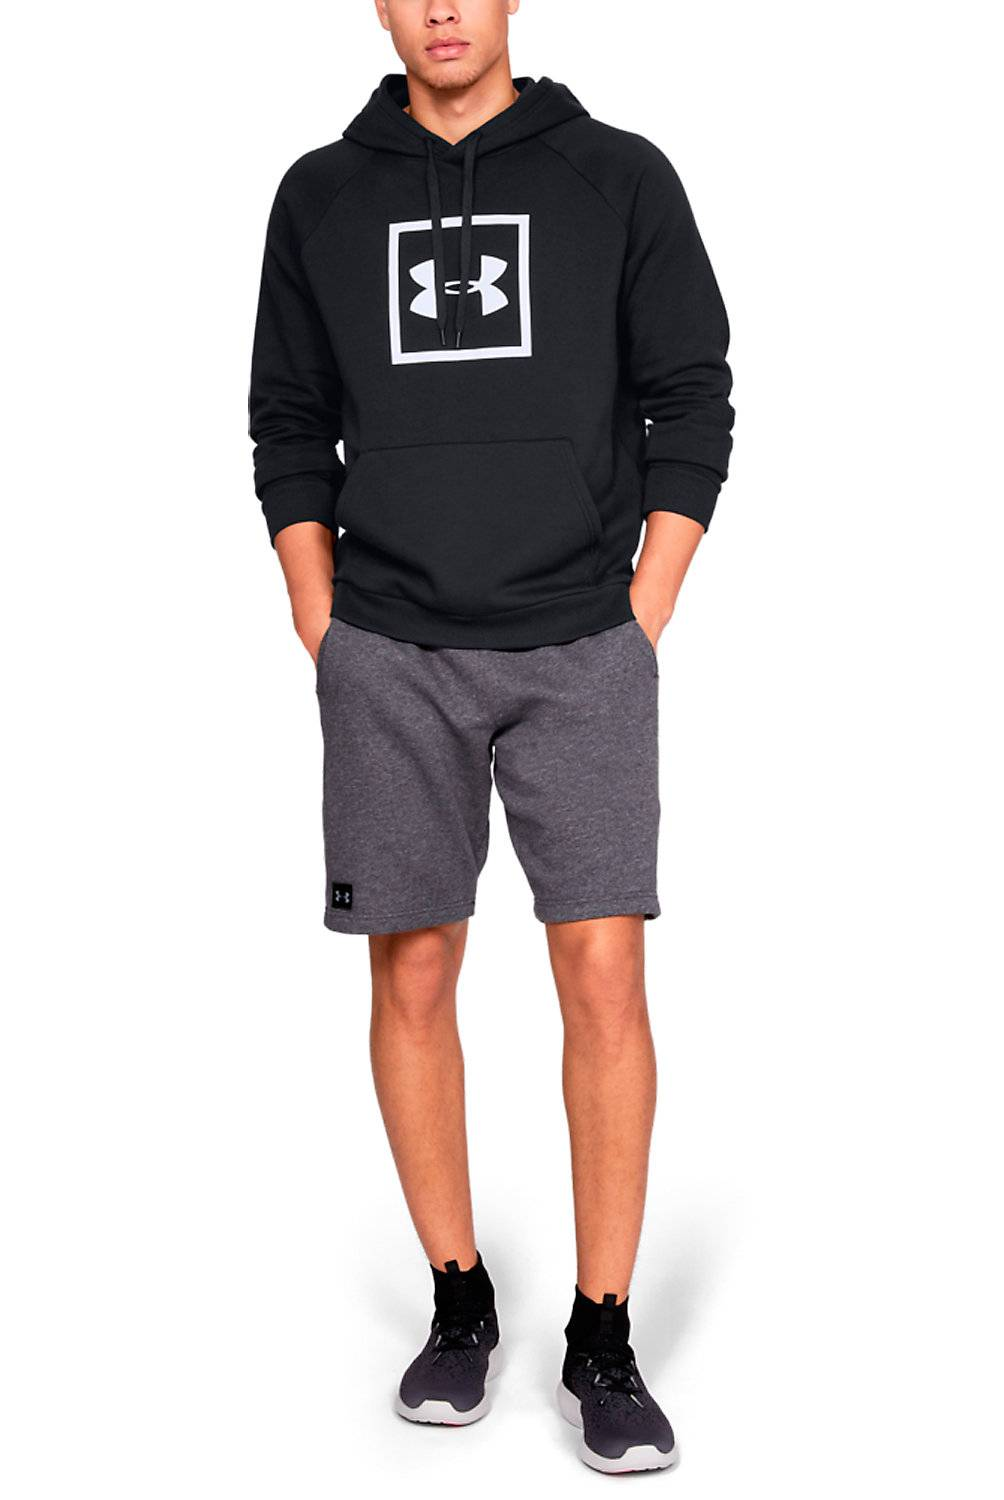 Under Armour - Buzo Hoodie